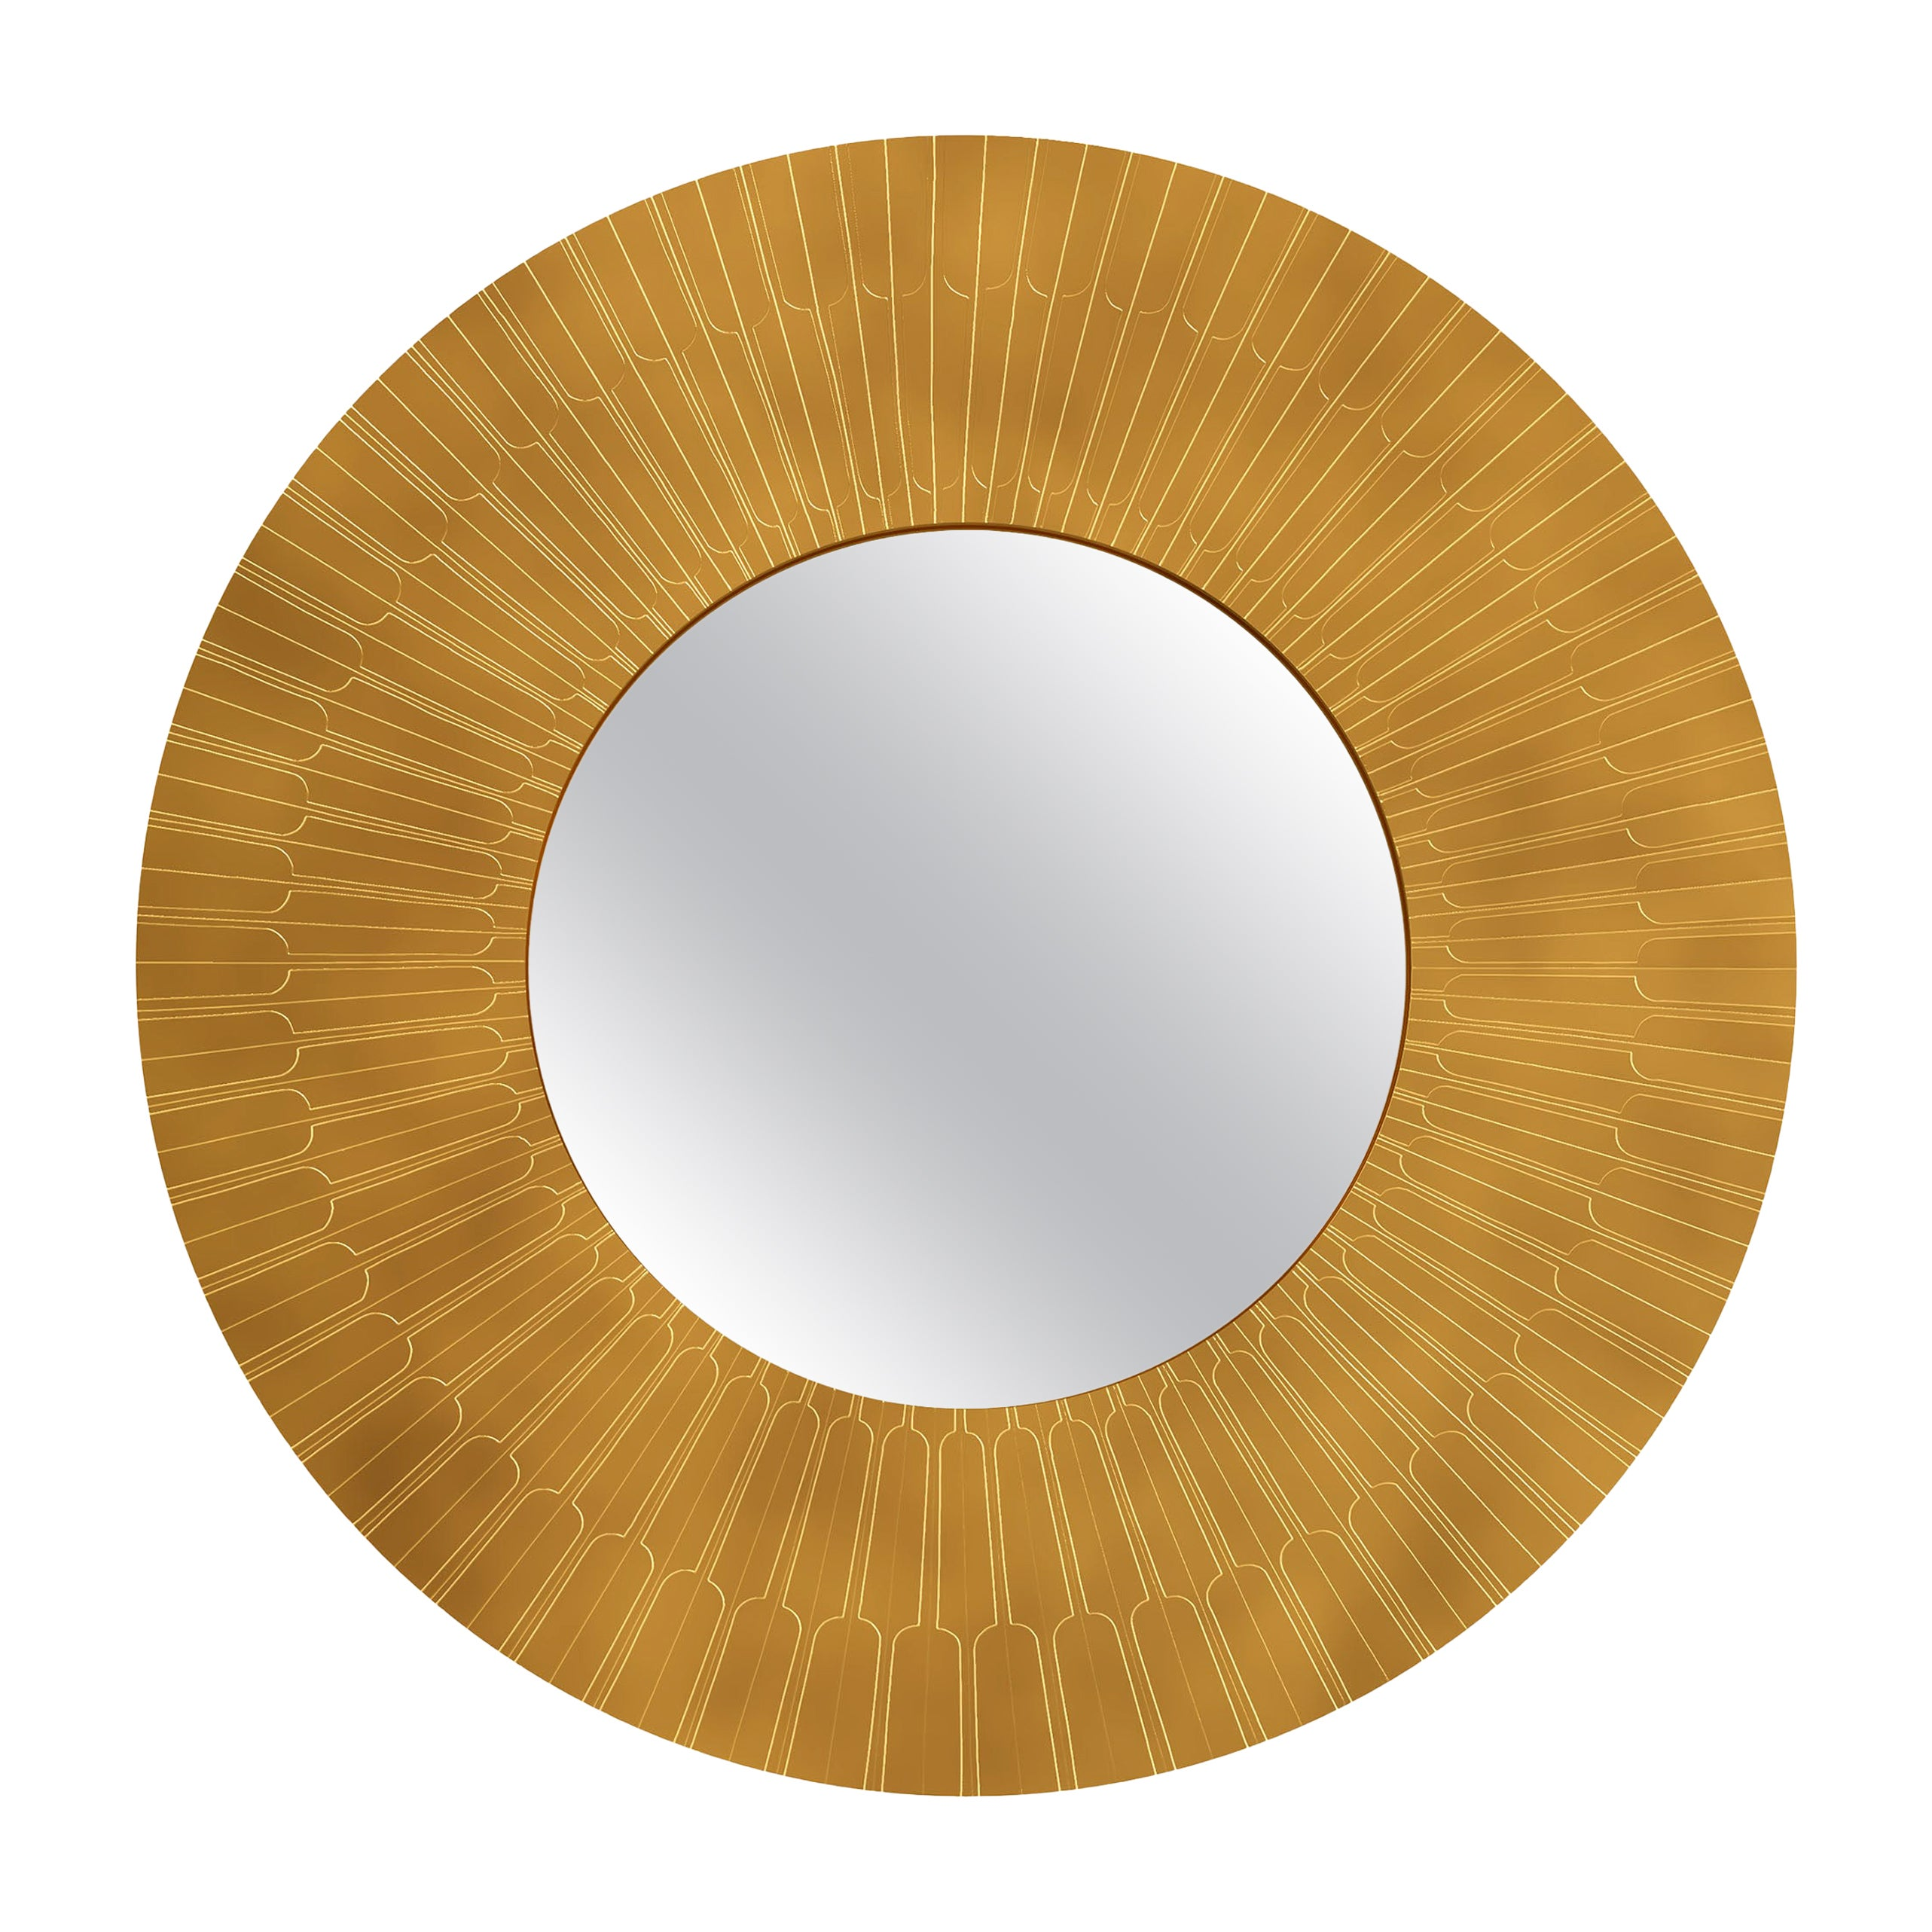 Citylights Wall Console Mirror in Brass by Matteo Cibic